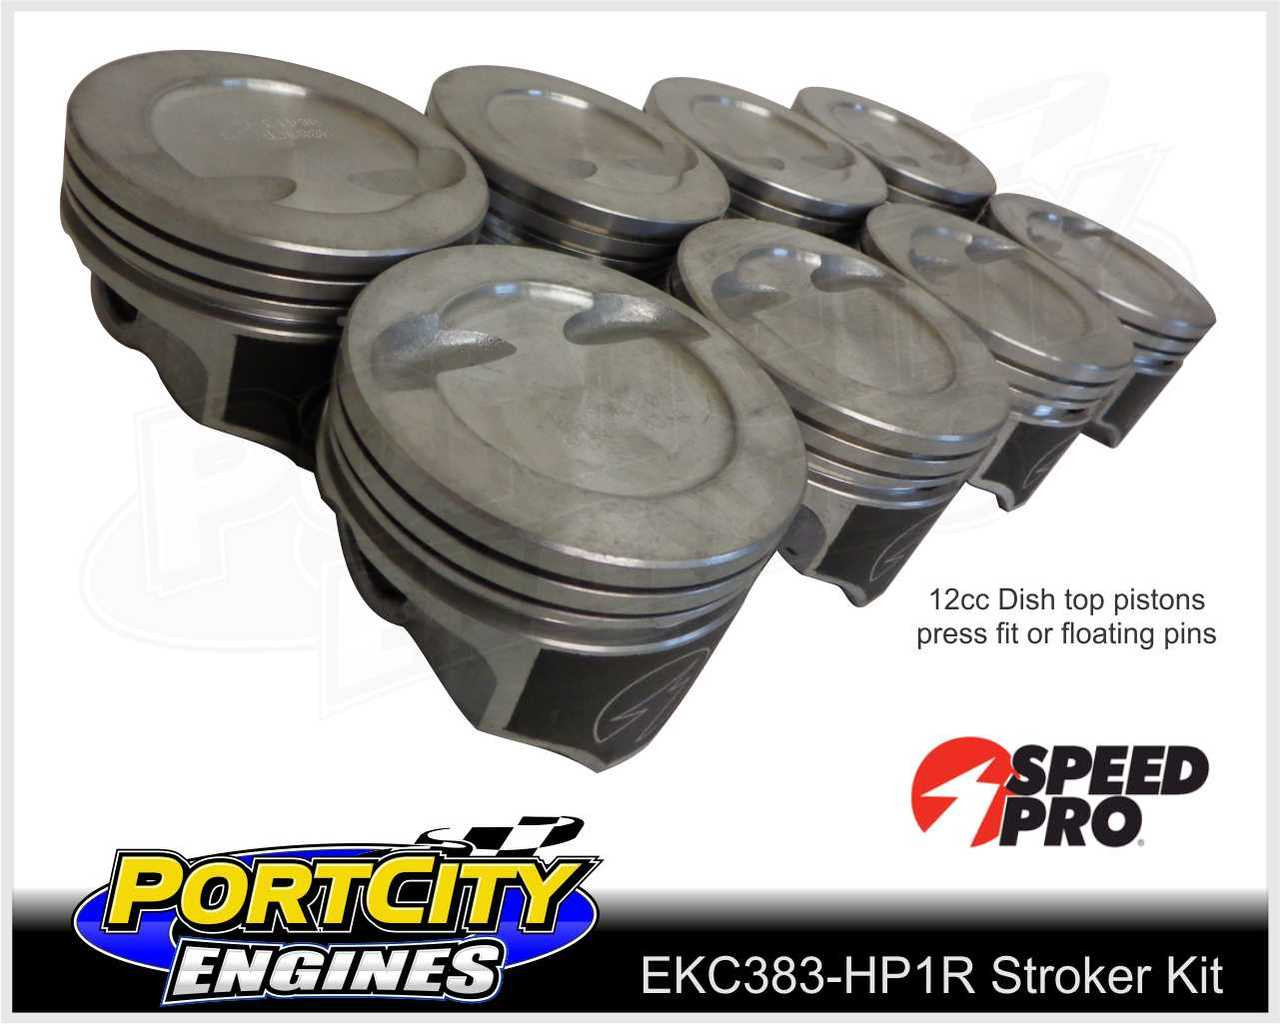 Speed Pro dish top pistons for 383 stroker